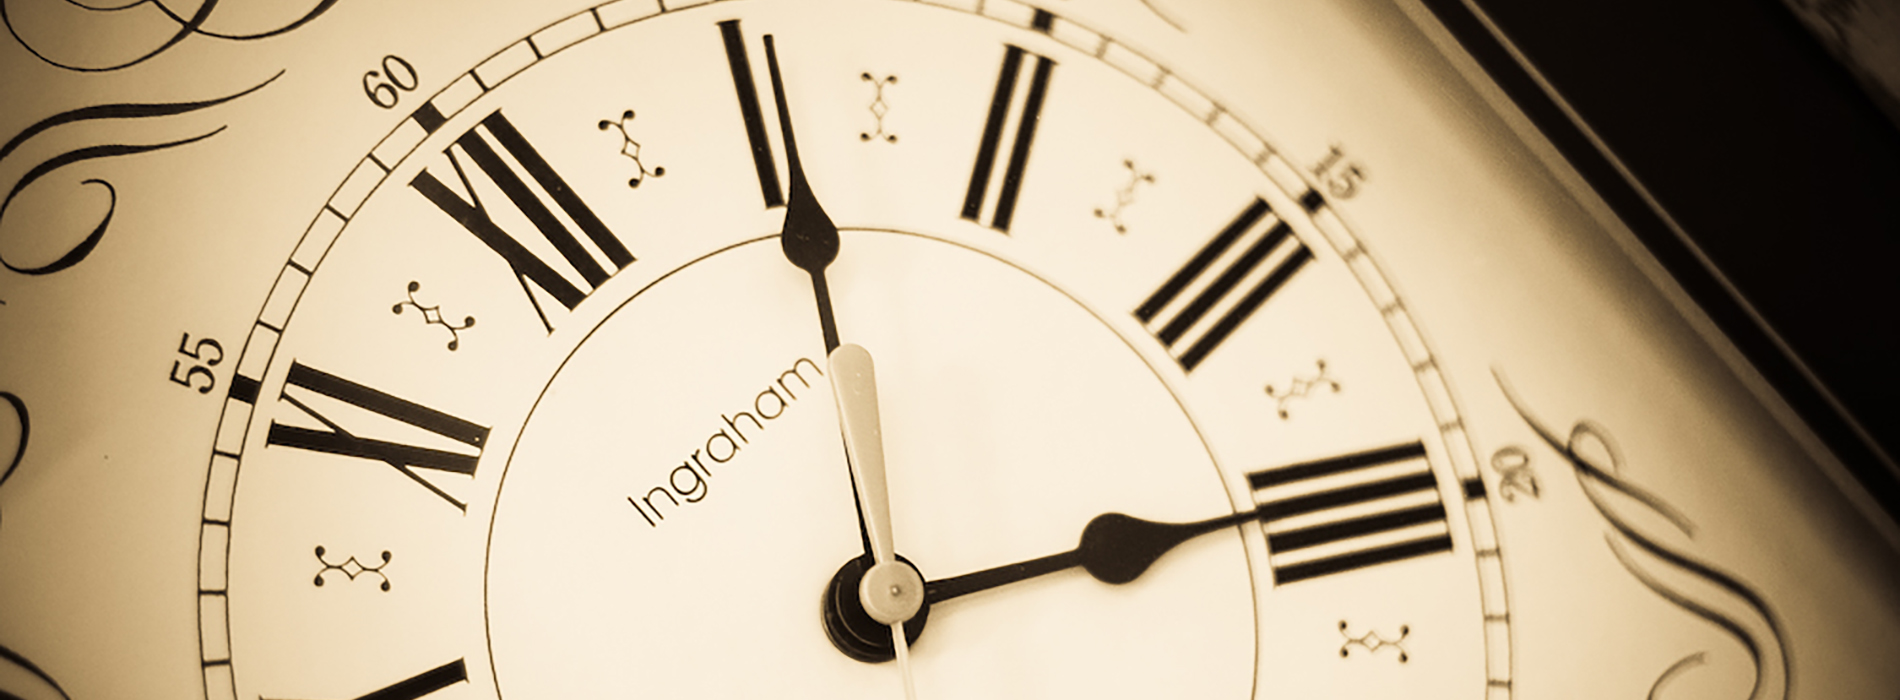 Antique clock face. The clock is ticking. There's no time like the present.